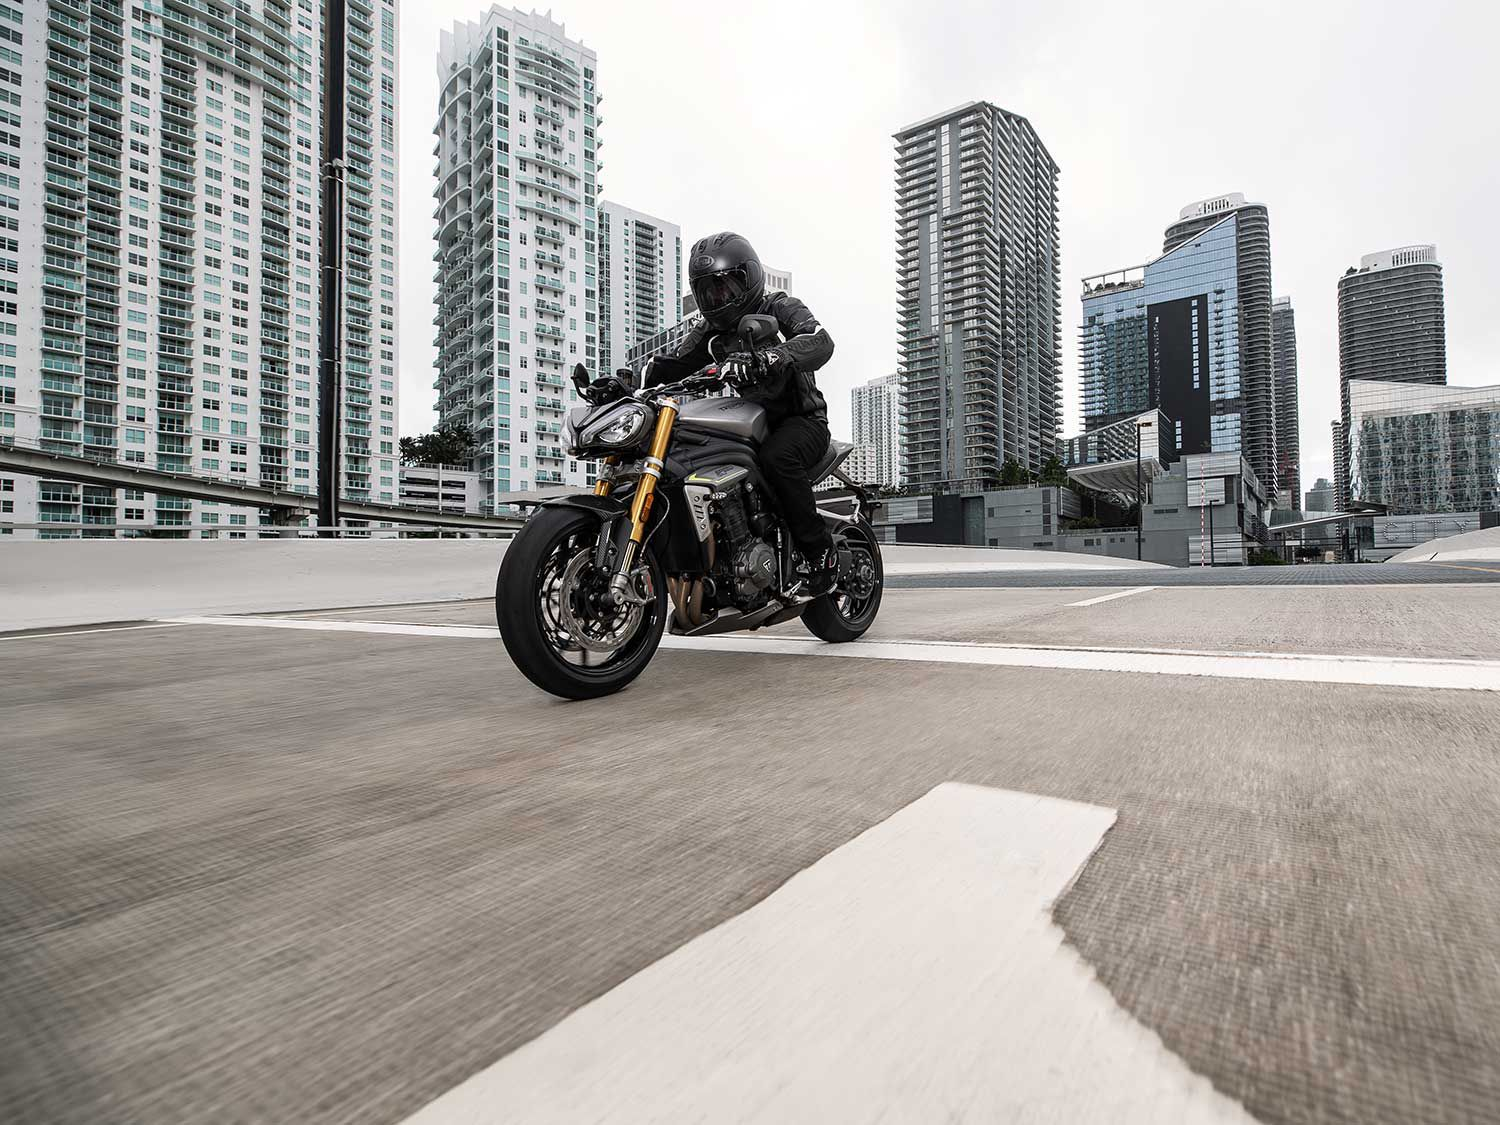 The 2021 Triumph Speed Triple 1200 RS will cost $18,300.